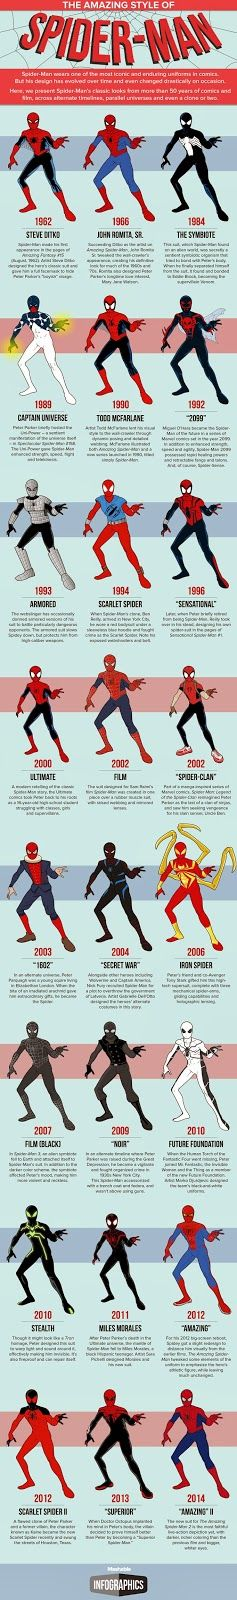 Spider-Man Costumes (Infographic)